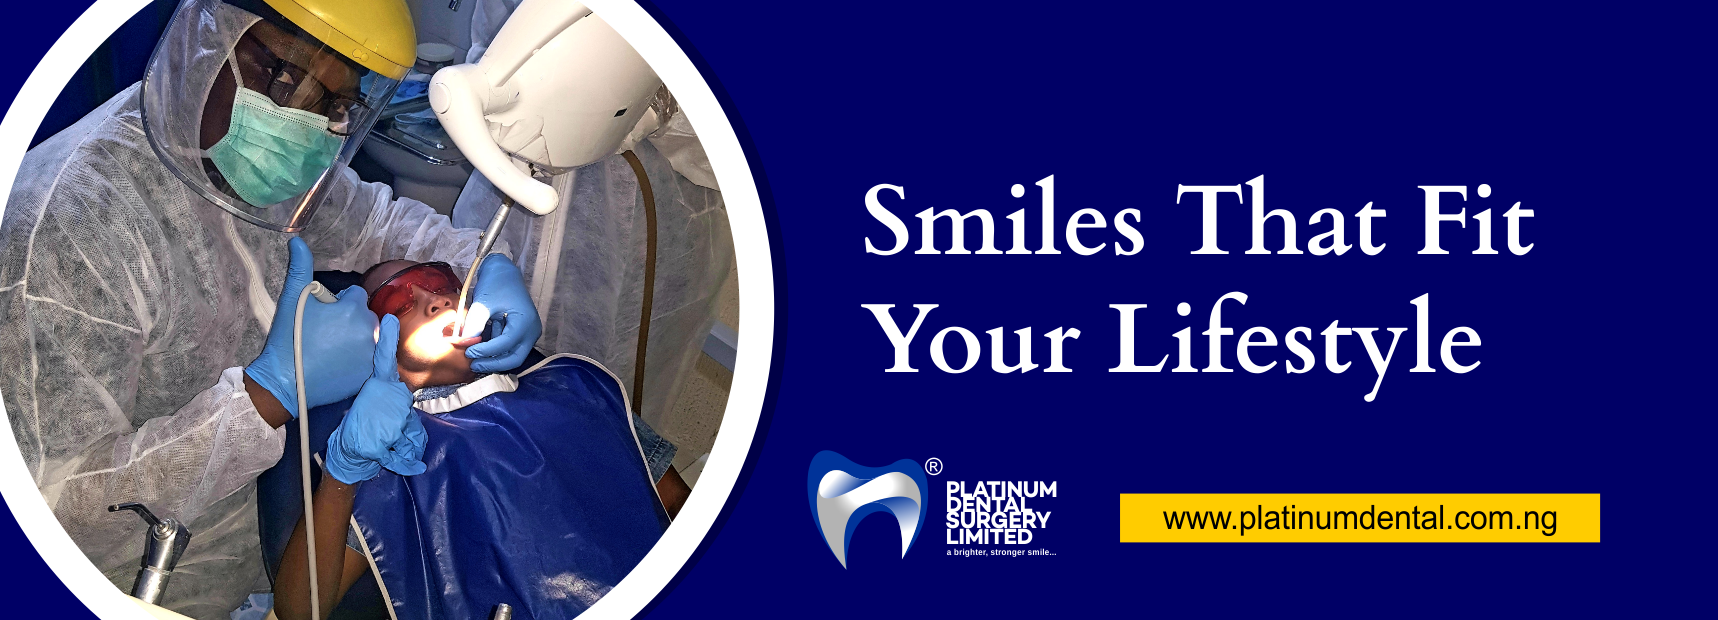 Smiles That Fit Your LifeStyle